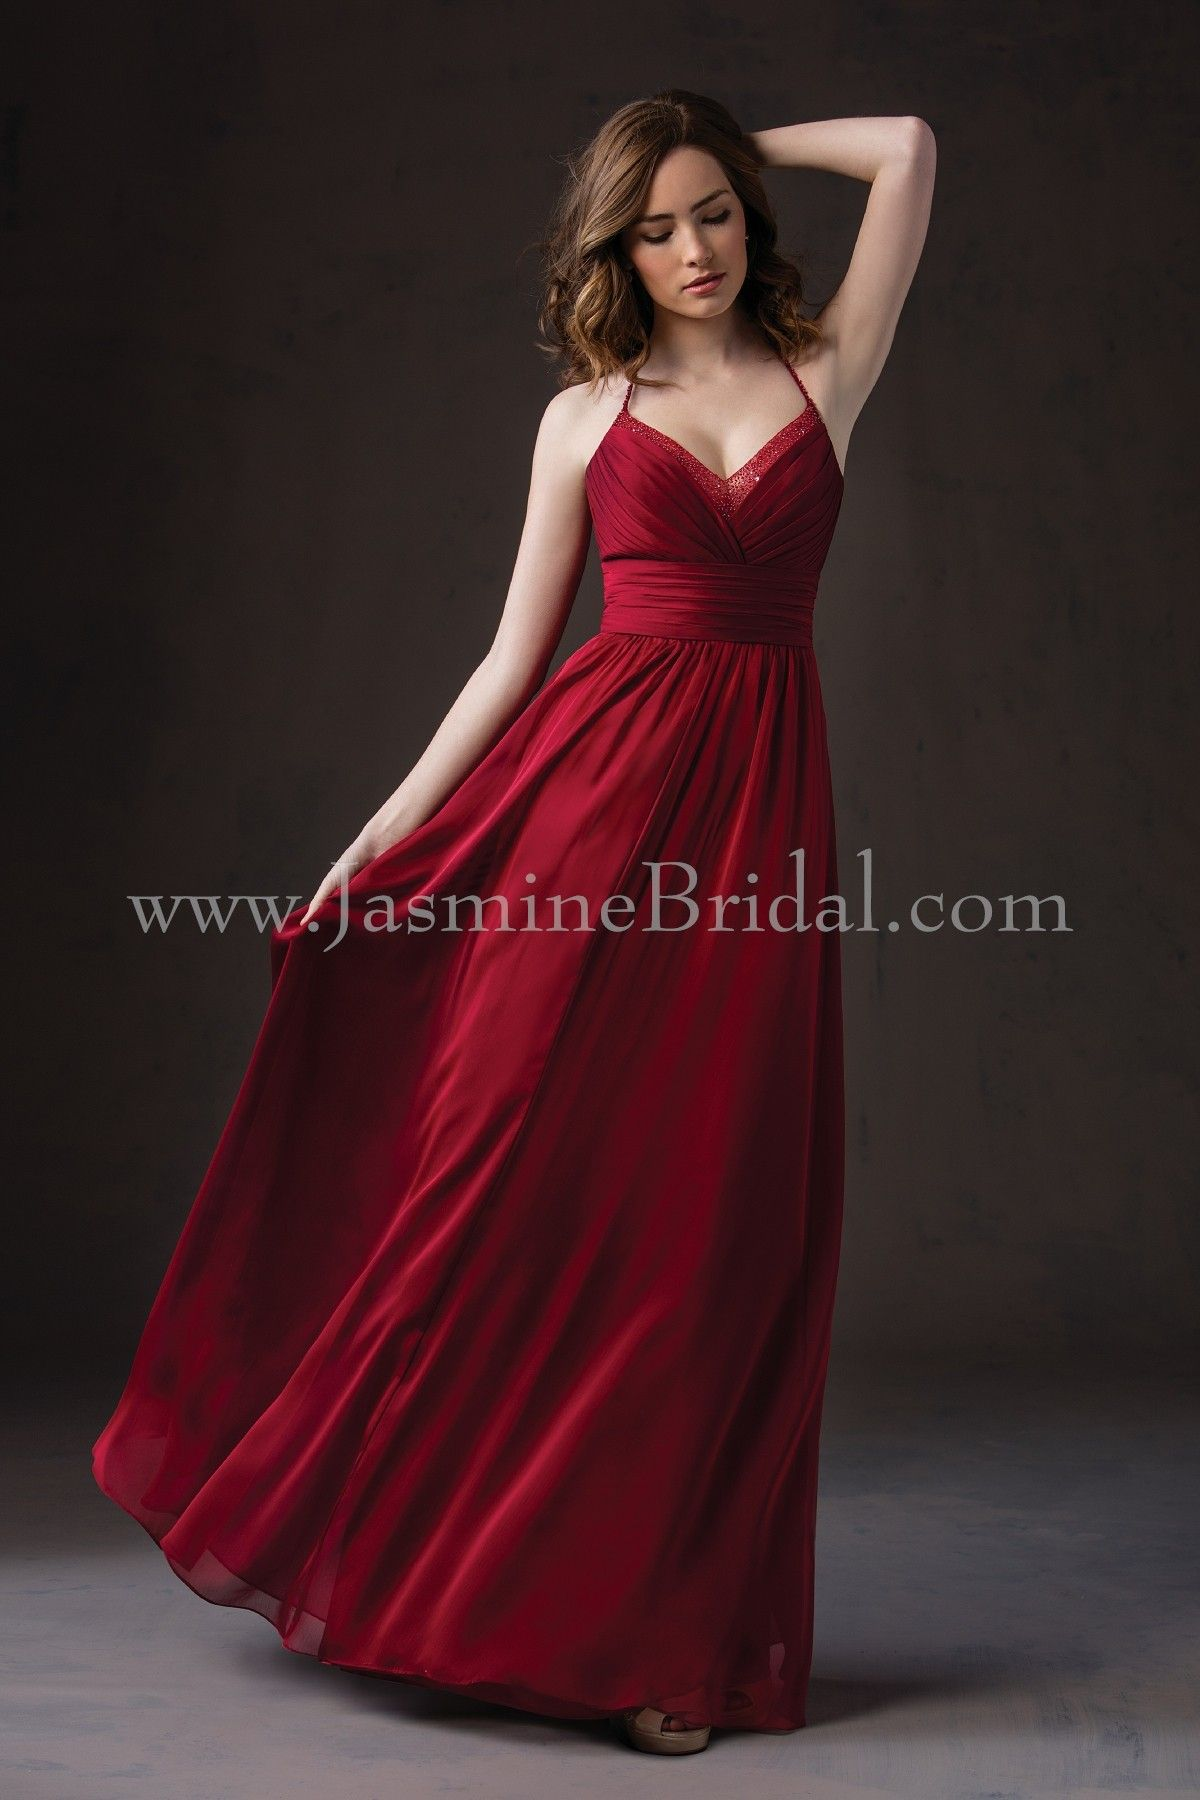 Jasmine bridal bridesmaid dress belsoie style l184059 in berry jasmine bridal bridesmaid dress belsoie style l184059 in berry ombrellifo Images